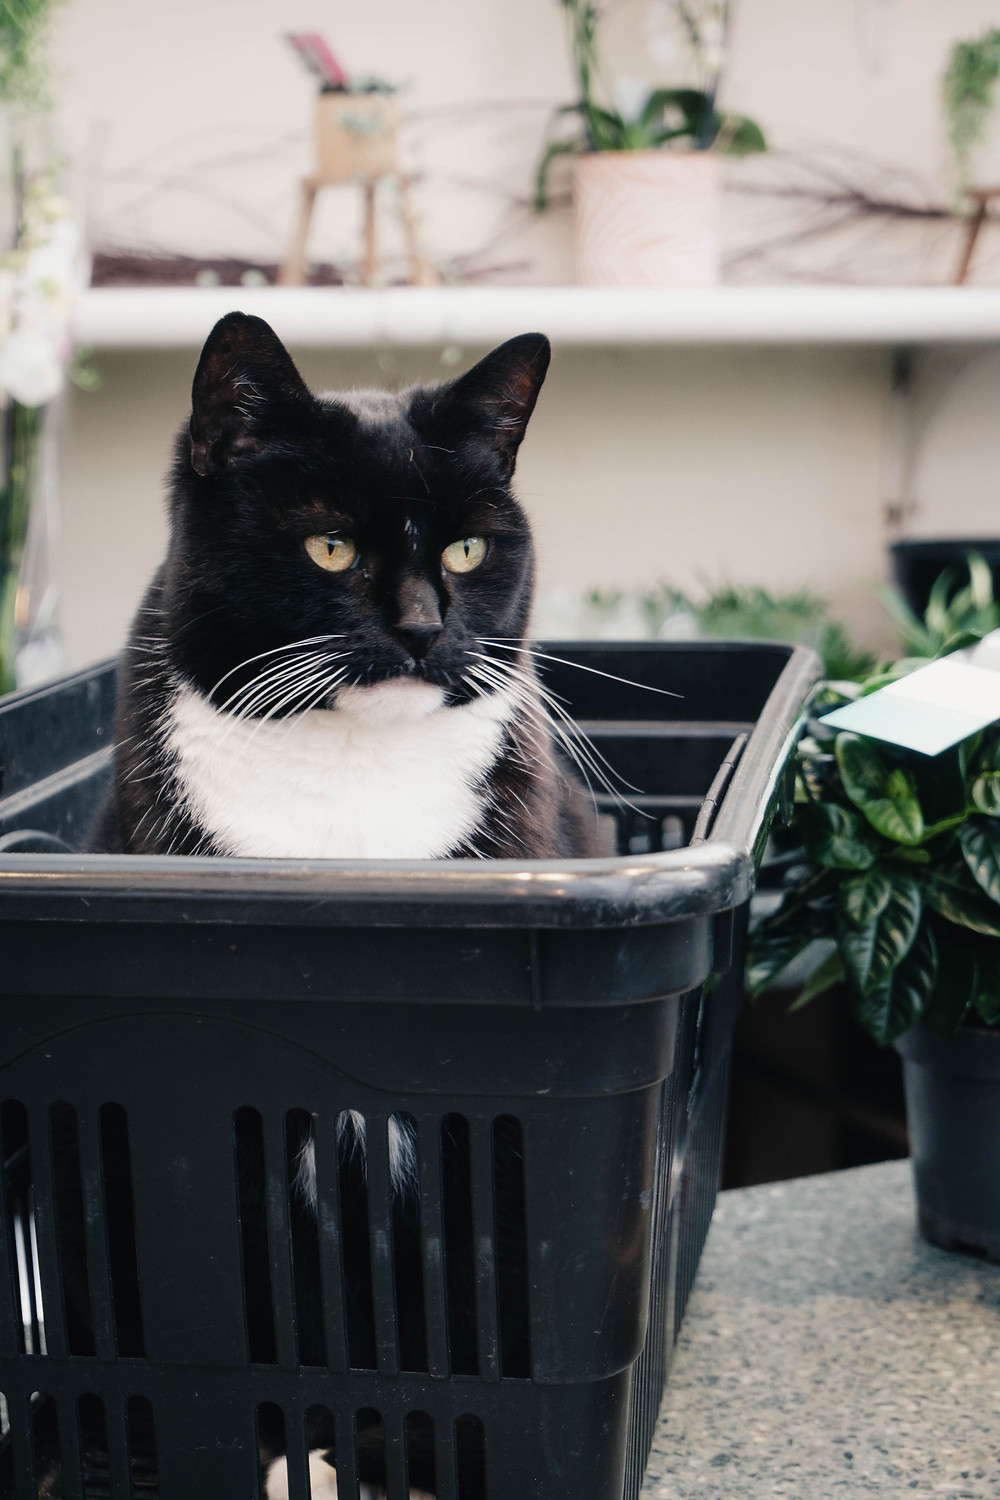 Photograph of a cat at Clifton Nursery